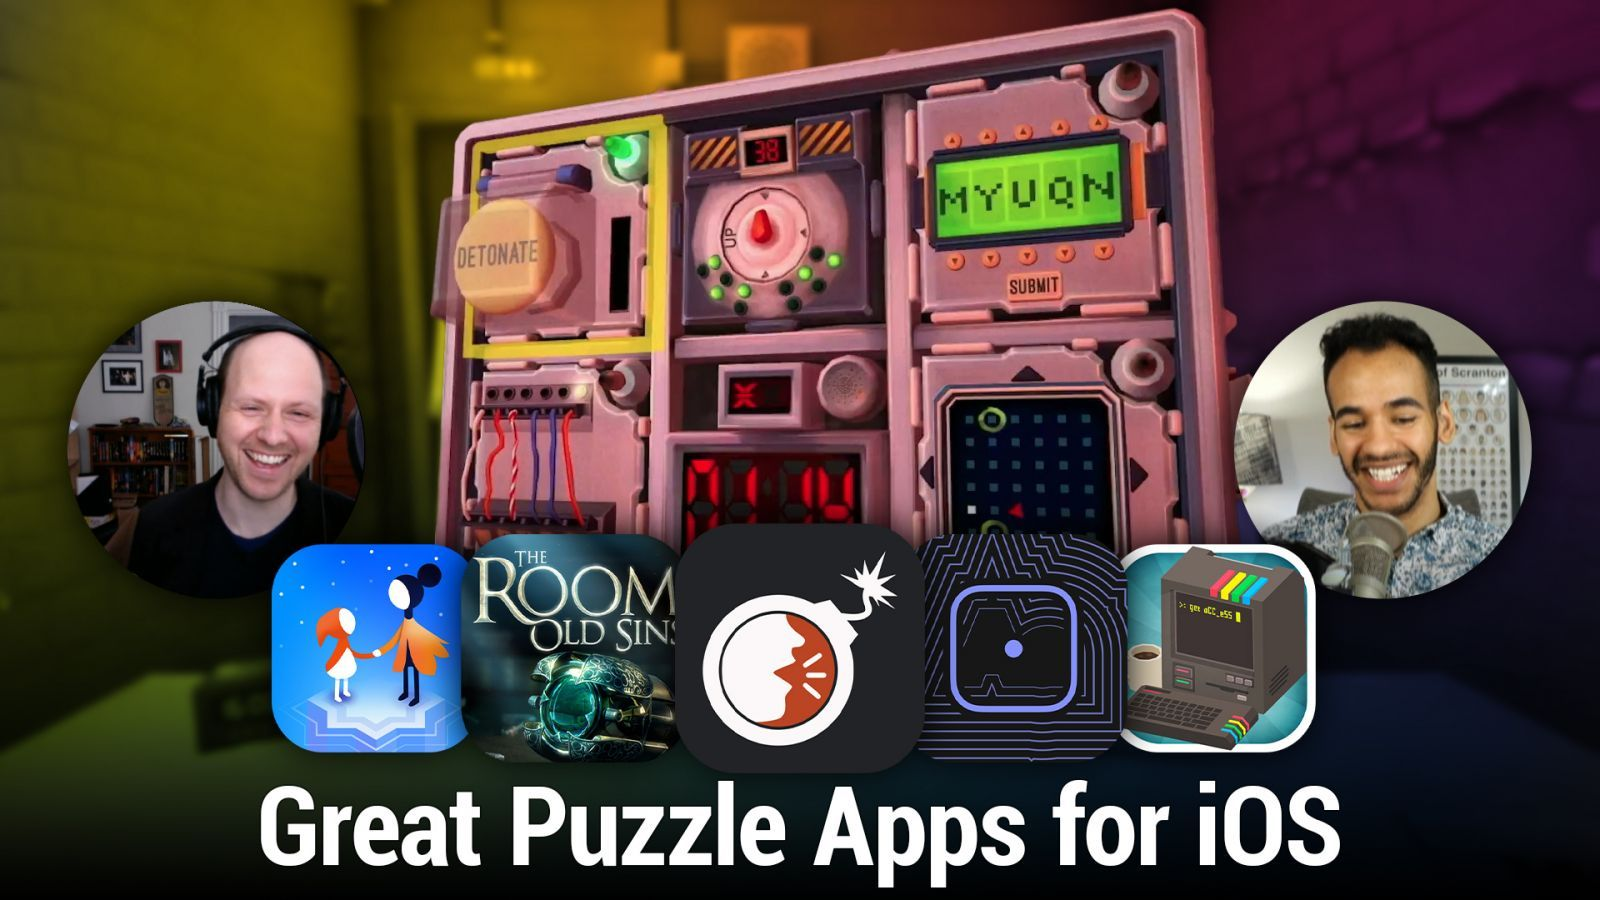 iOS 536: Great Puzzle Apps for iOS - The Room, Monument Valley 2, Get aCC_e55, and more.